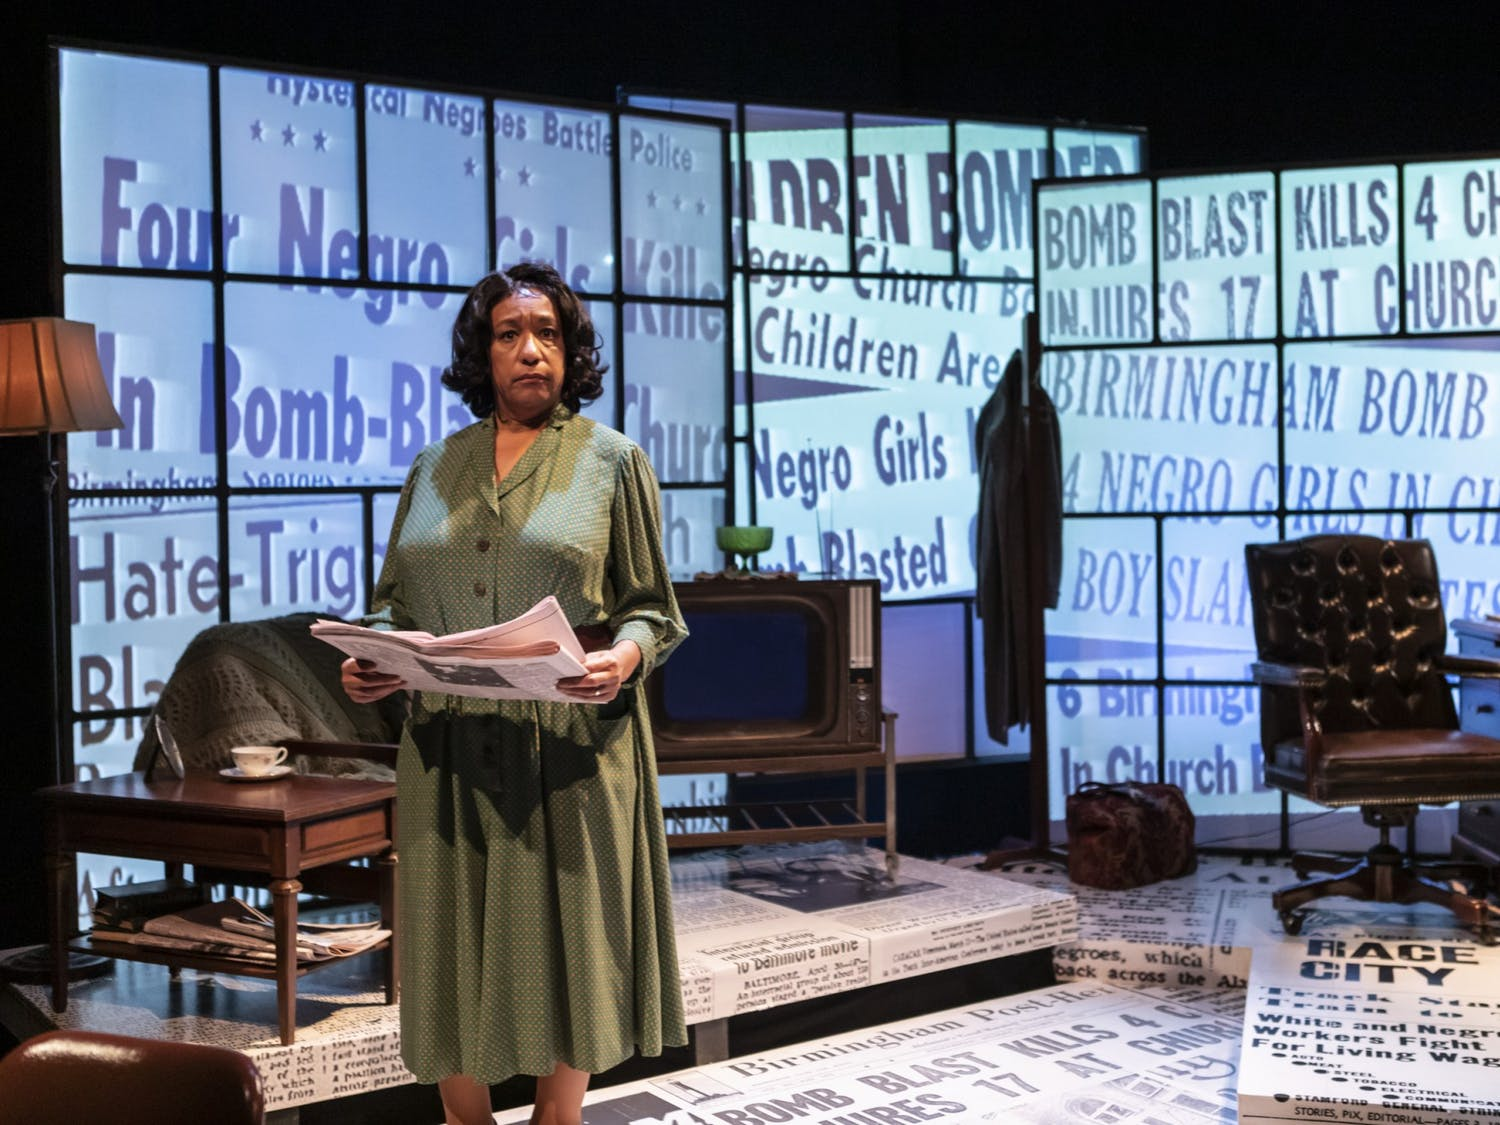 """PlayMakers Repertory Company is hosting Jaqueline E. Lawton's recent play, """"Edges of Time,"""" which shows the life of Marvel Cooke, the first Black woman journalist to have her own byline in a major U.S. newspaper. The one-woman show stars Kathryn Hunter-Williams as Cooke. Photo courtesy of Alex Maness."""